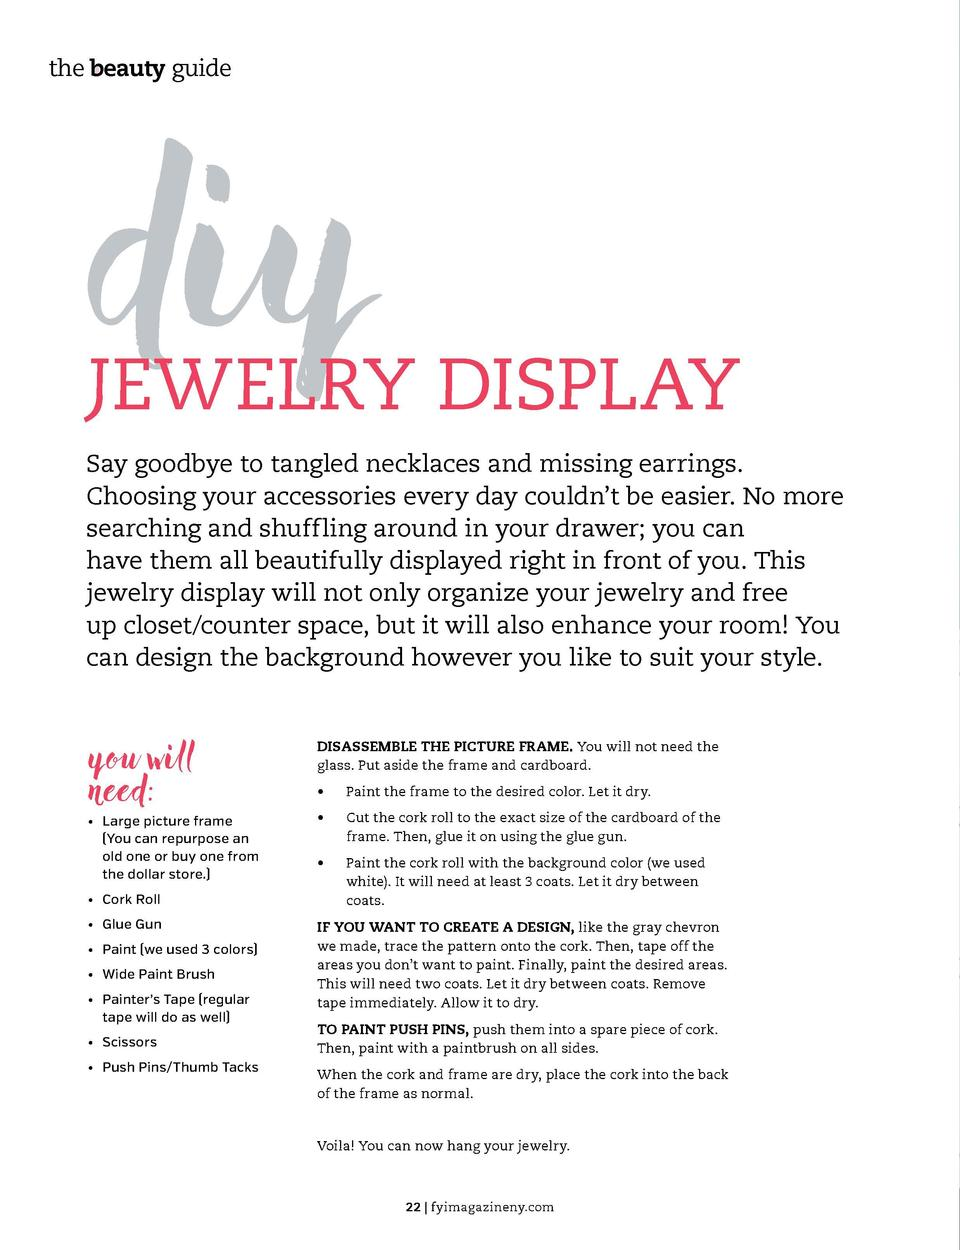 the beauty guide  the beauty guide  diy  JEWELRY DISPLAY Say goodbye to tangled necklaces and missing earrings. Choosing y...